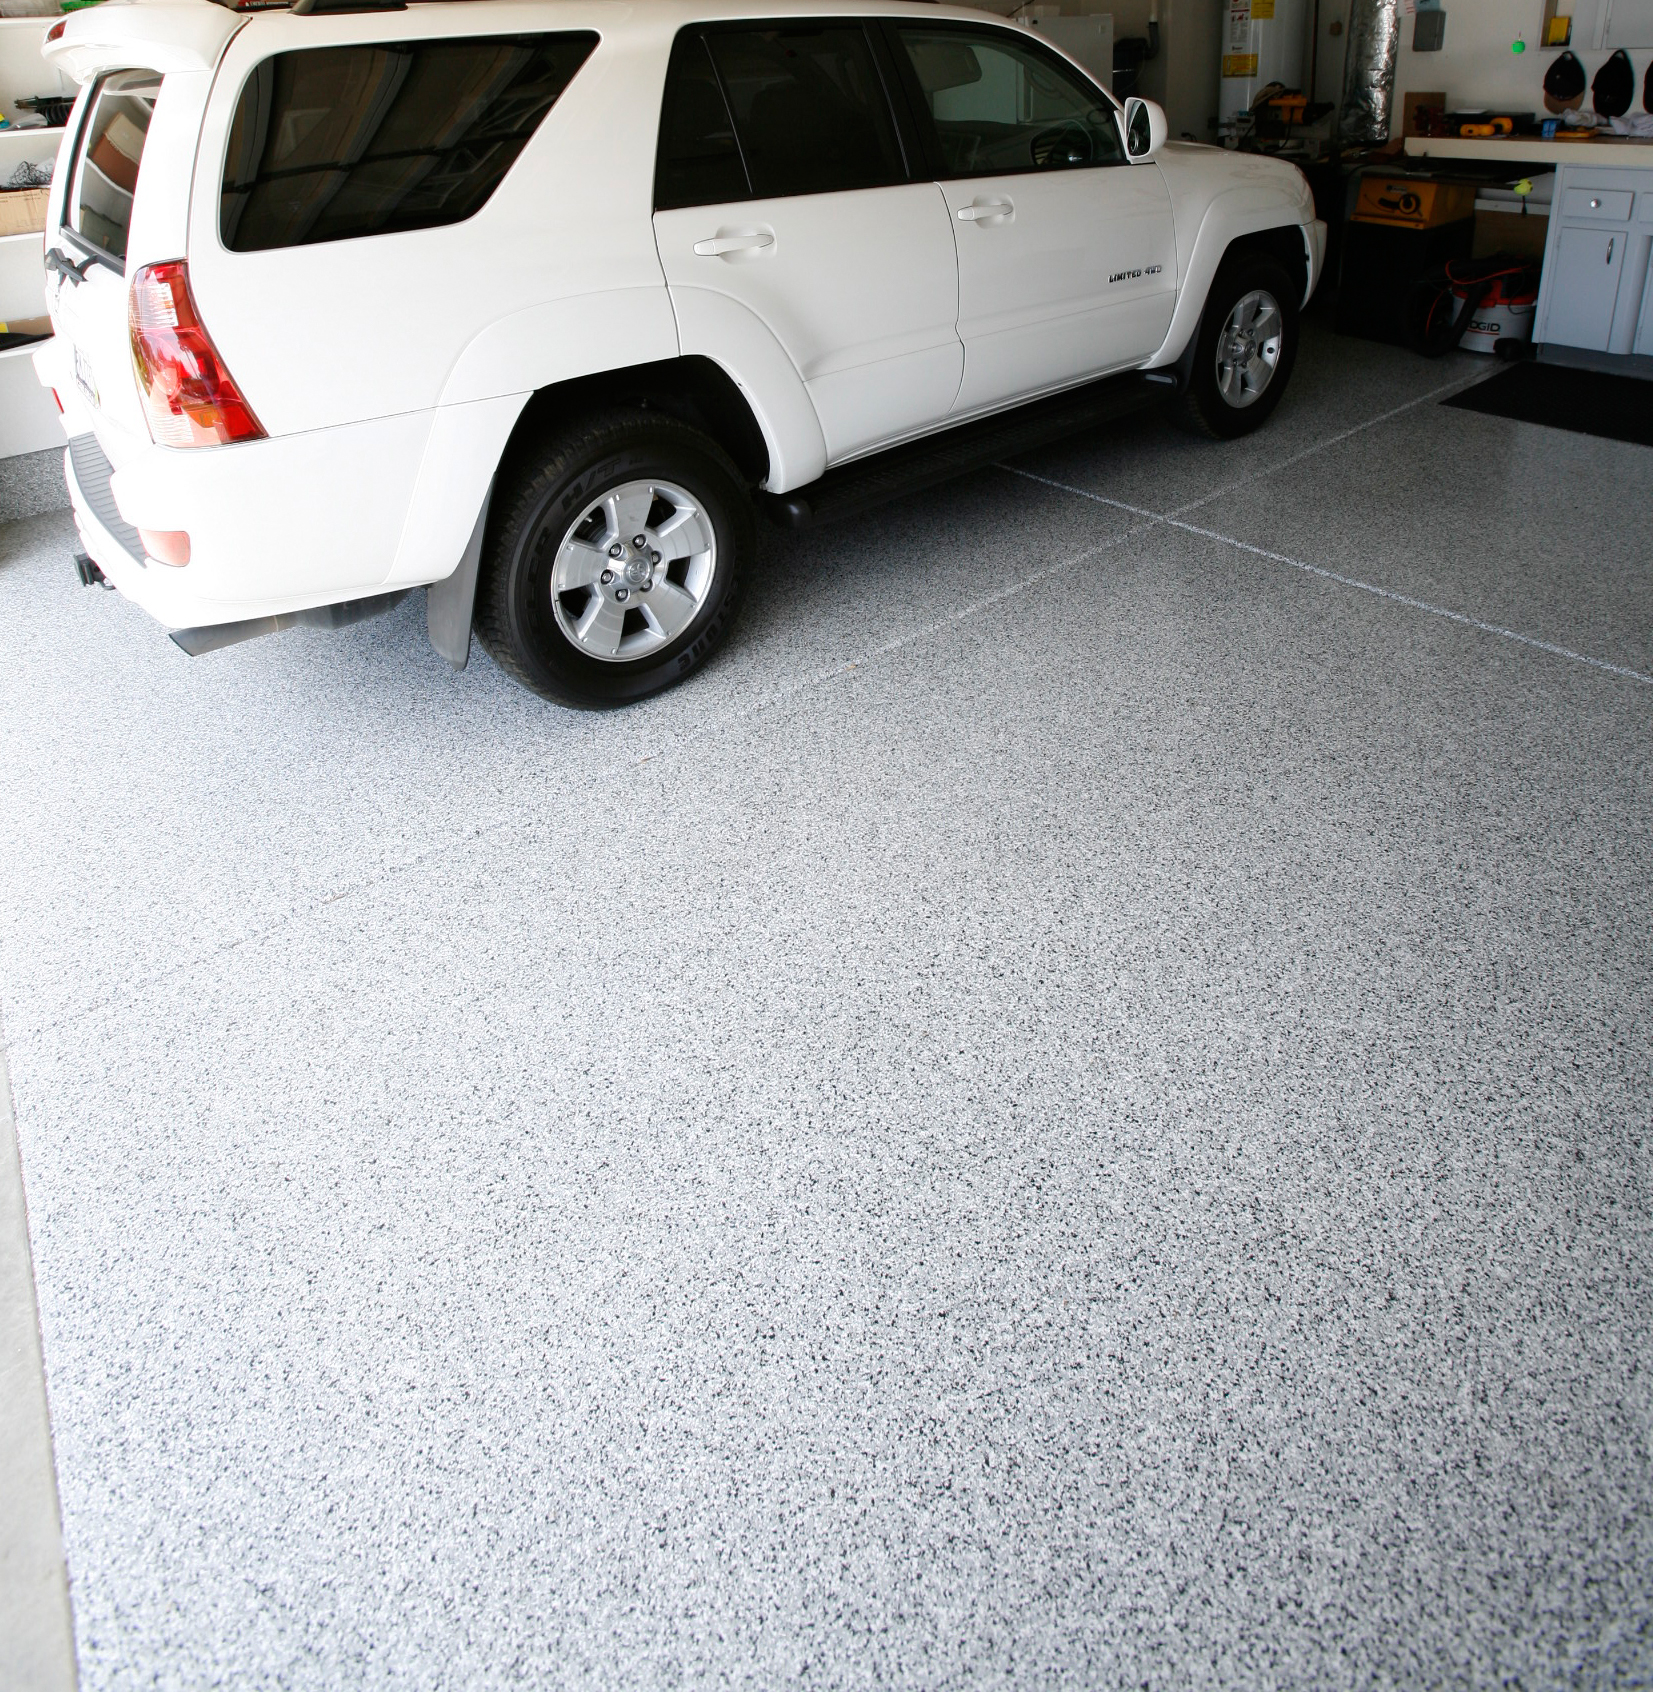 Garage Floor Paint Chips Epoxy Coating For Garage Floors Concrete Texturingconcrete Texturing